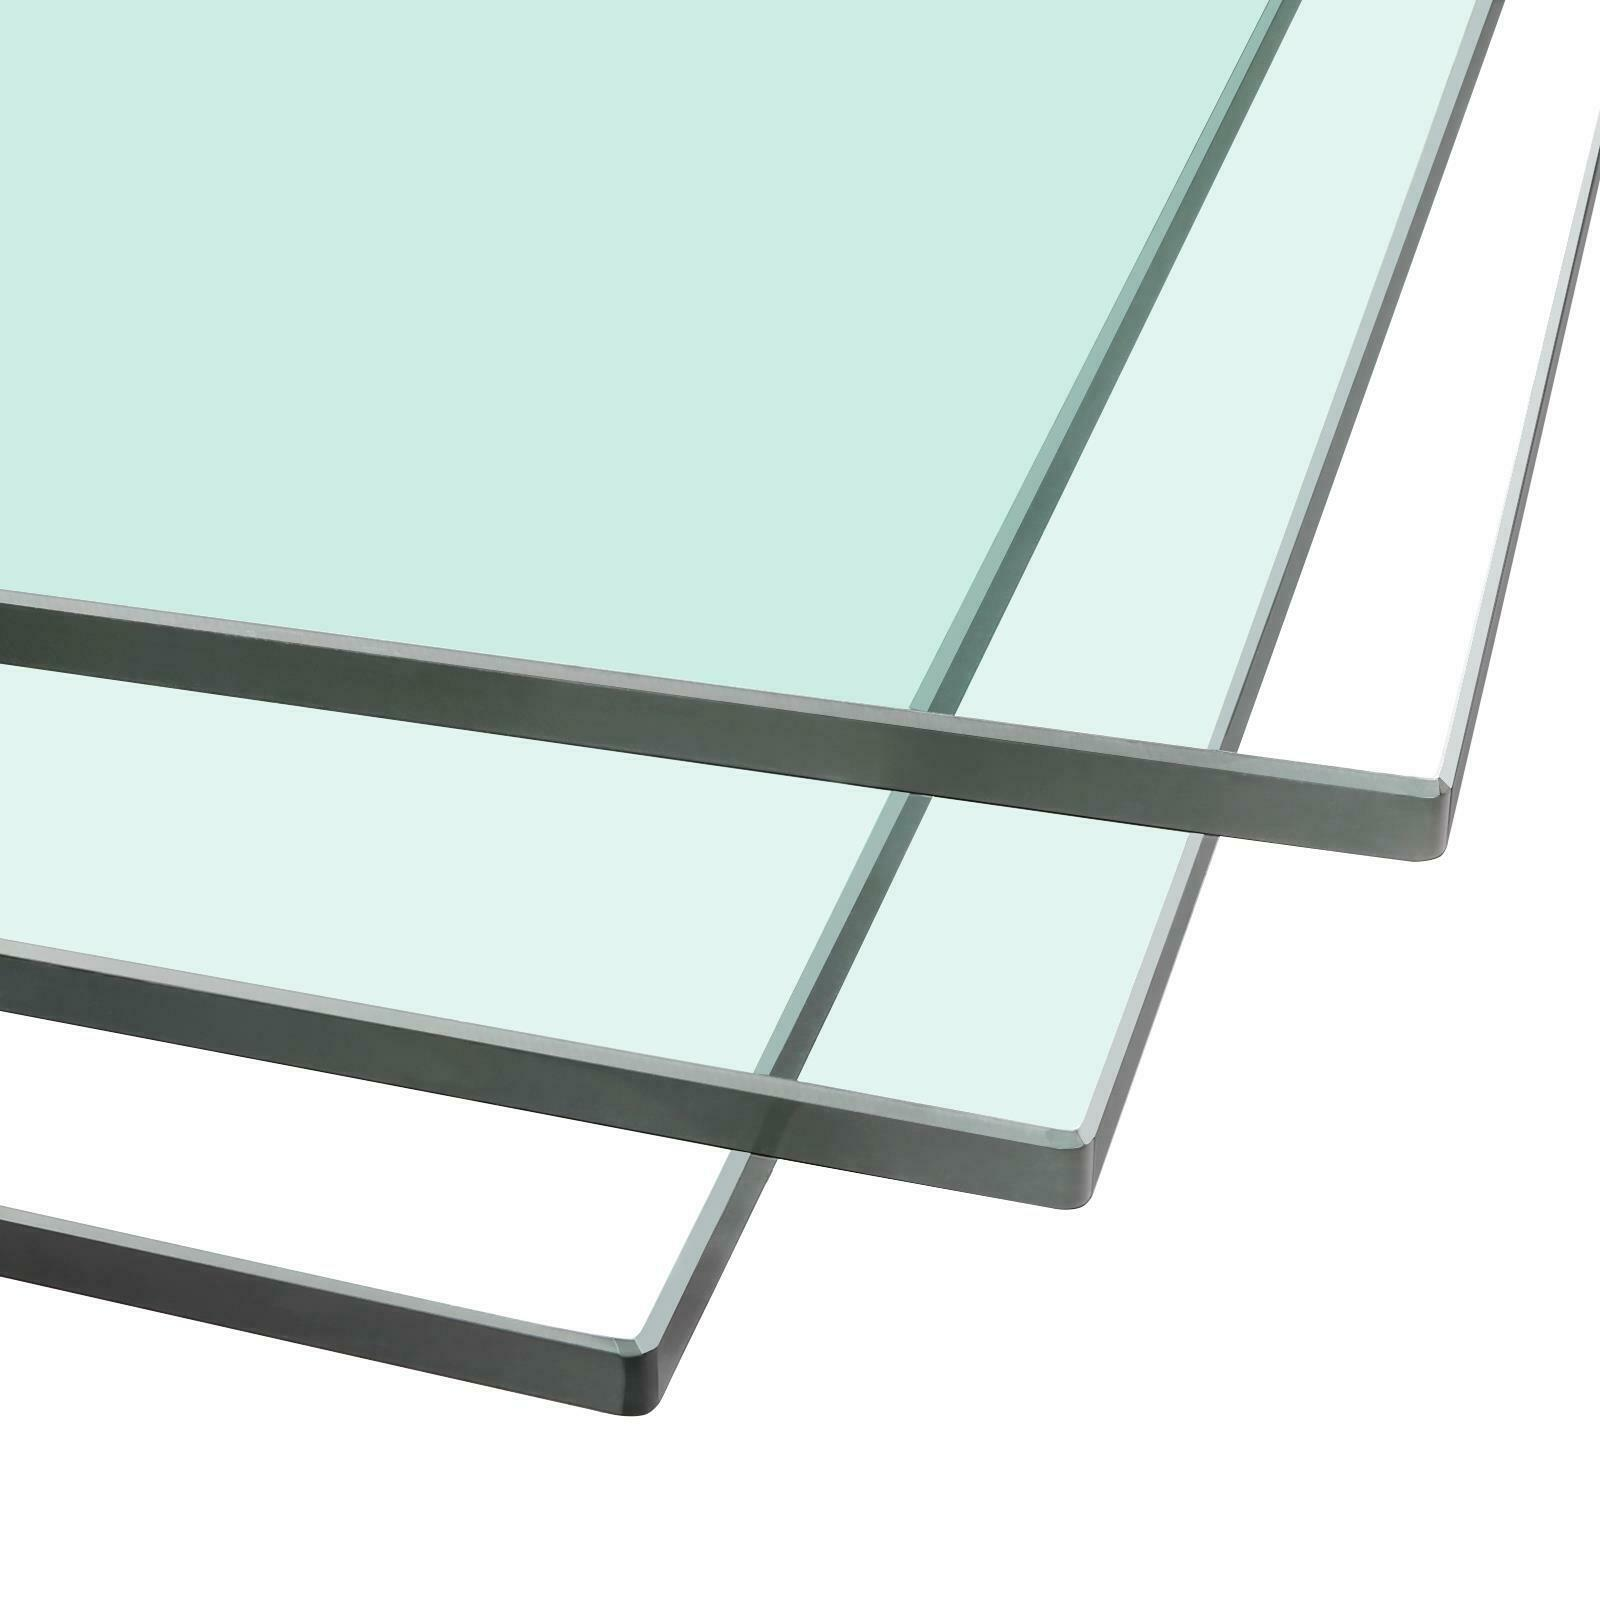 100cm x 100cm CE Certified 10mm Clear Toughened Safety Glass